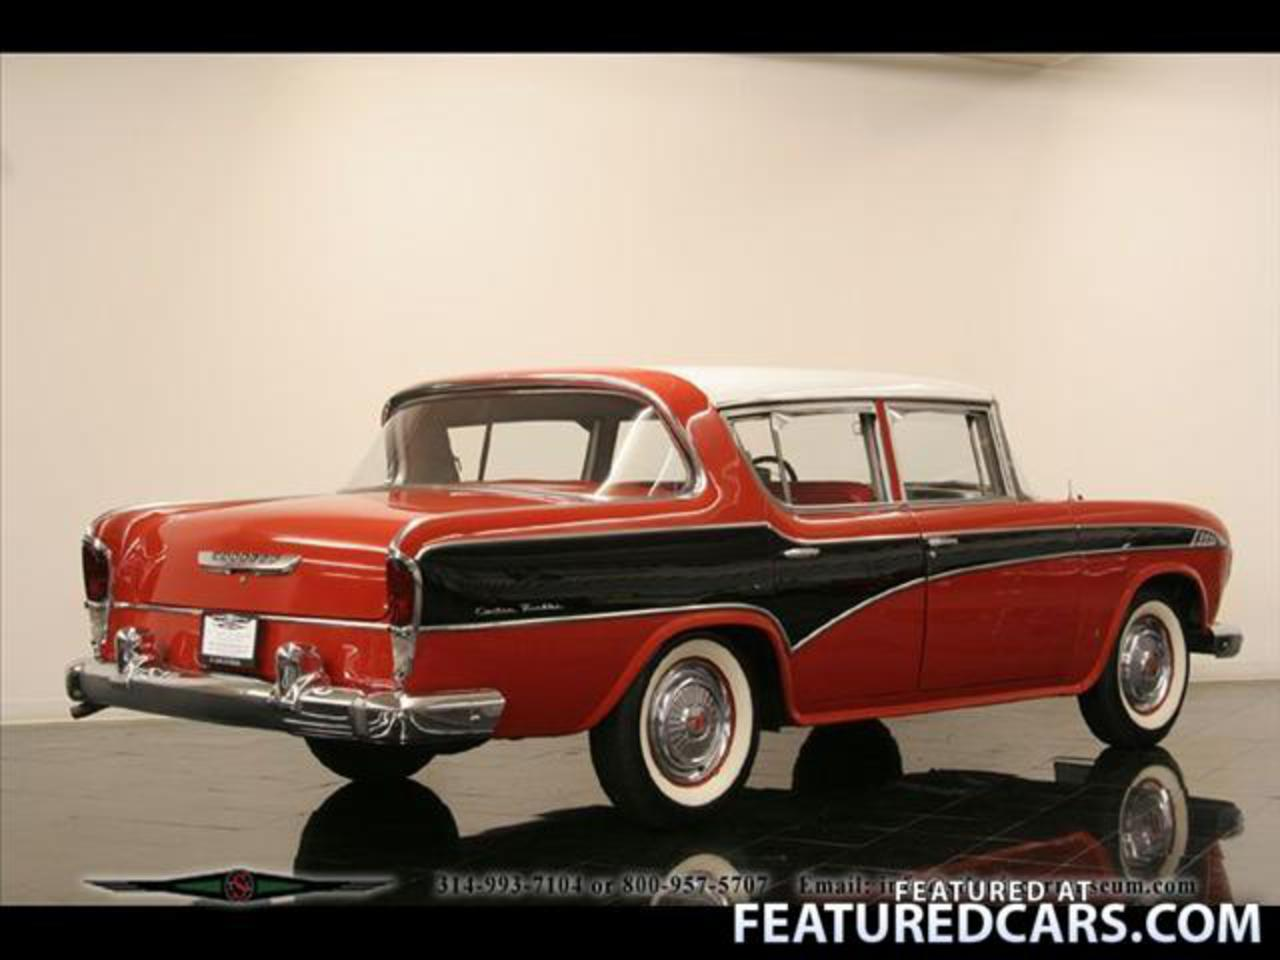 1956 Hudson Rambler - Saint Louis, MO, Used Cars for Sale ...